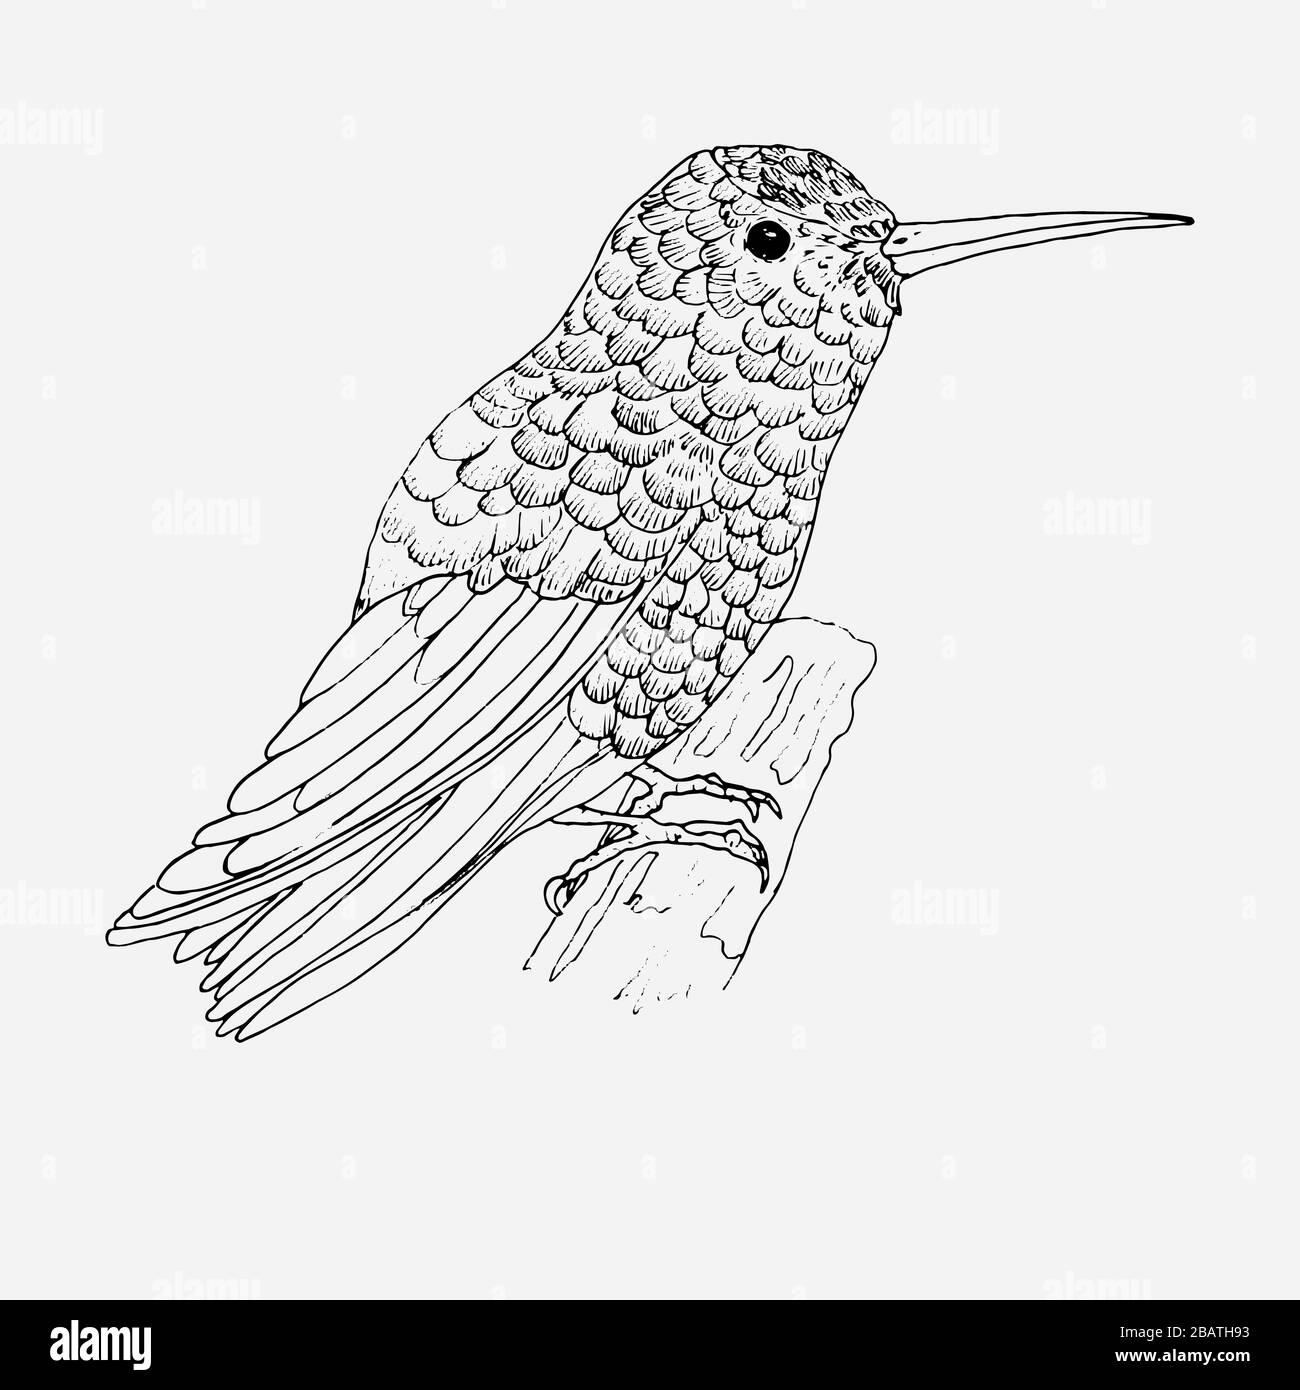 Hummingbird For Coloring Page Bird Stock Photo Alamy